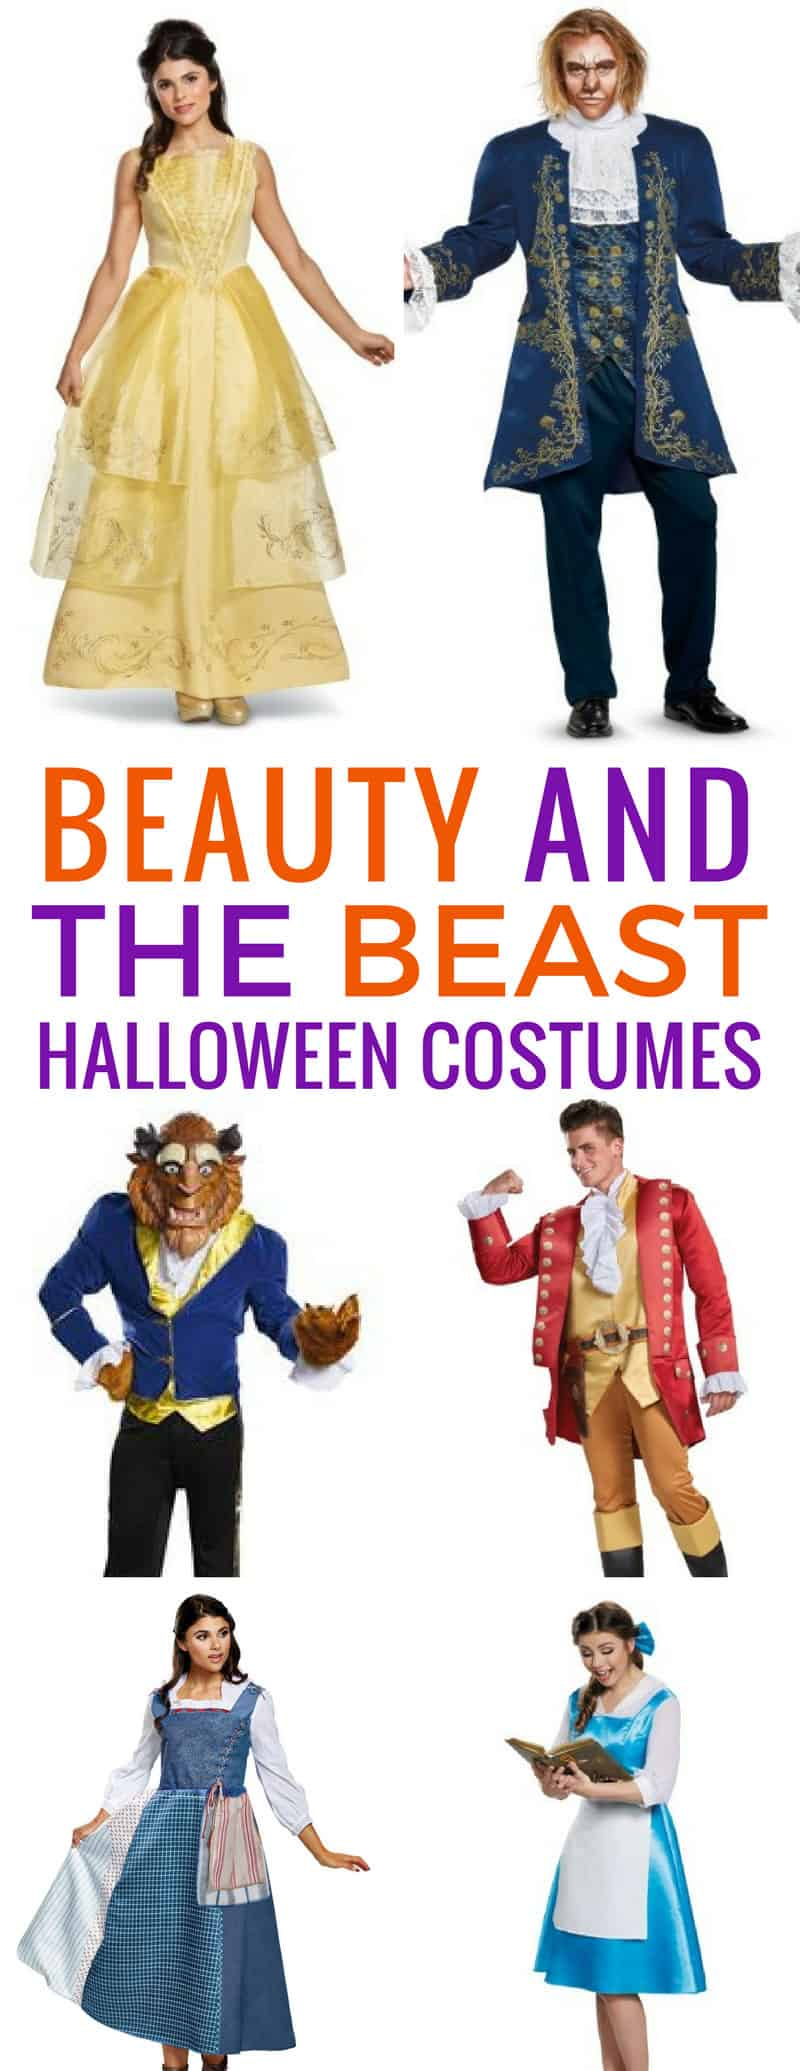 Loving these Beauty and the Beast costumes for Halloween - we'll be the best family at the party!